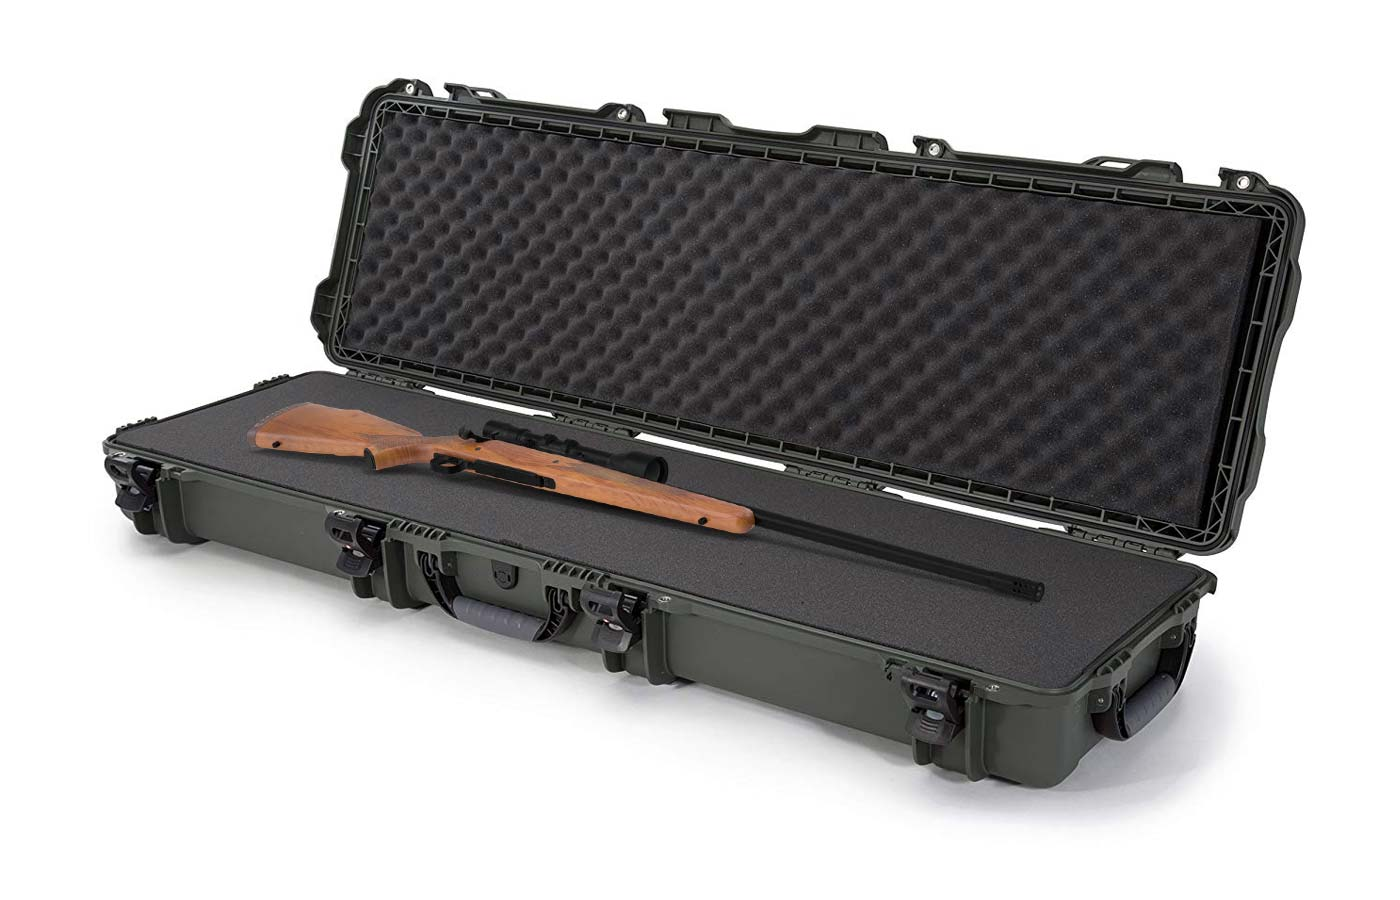 Nanuk 995 rifle case with a Winchester Model 70